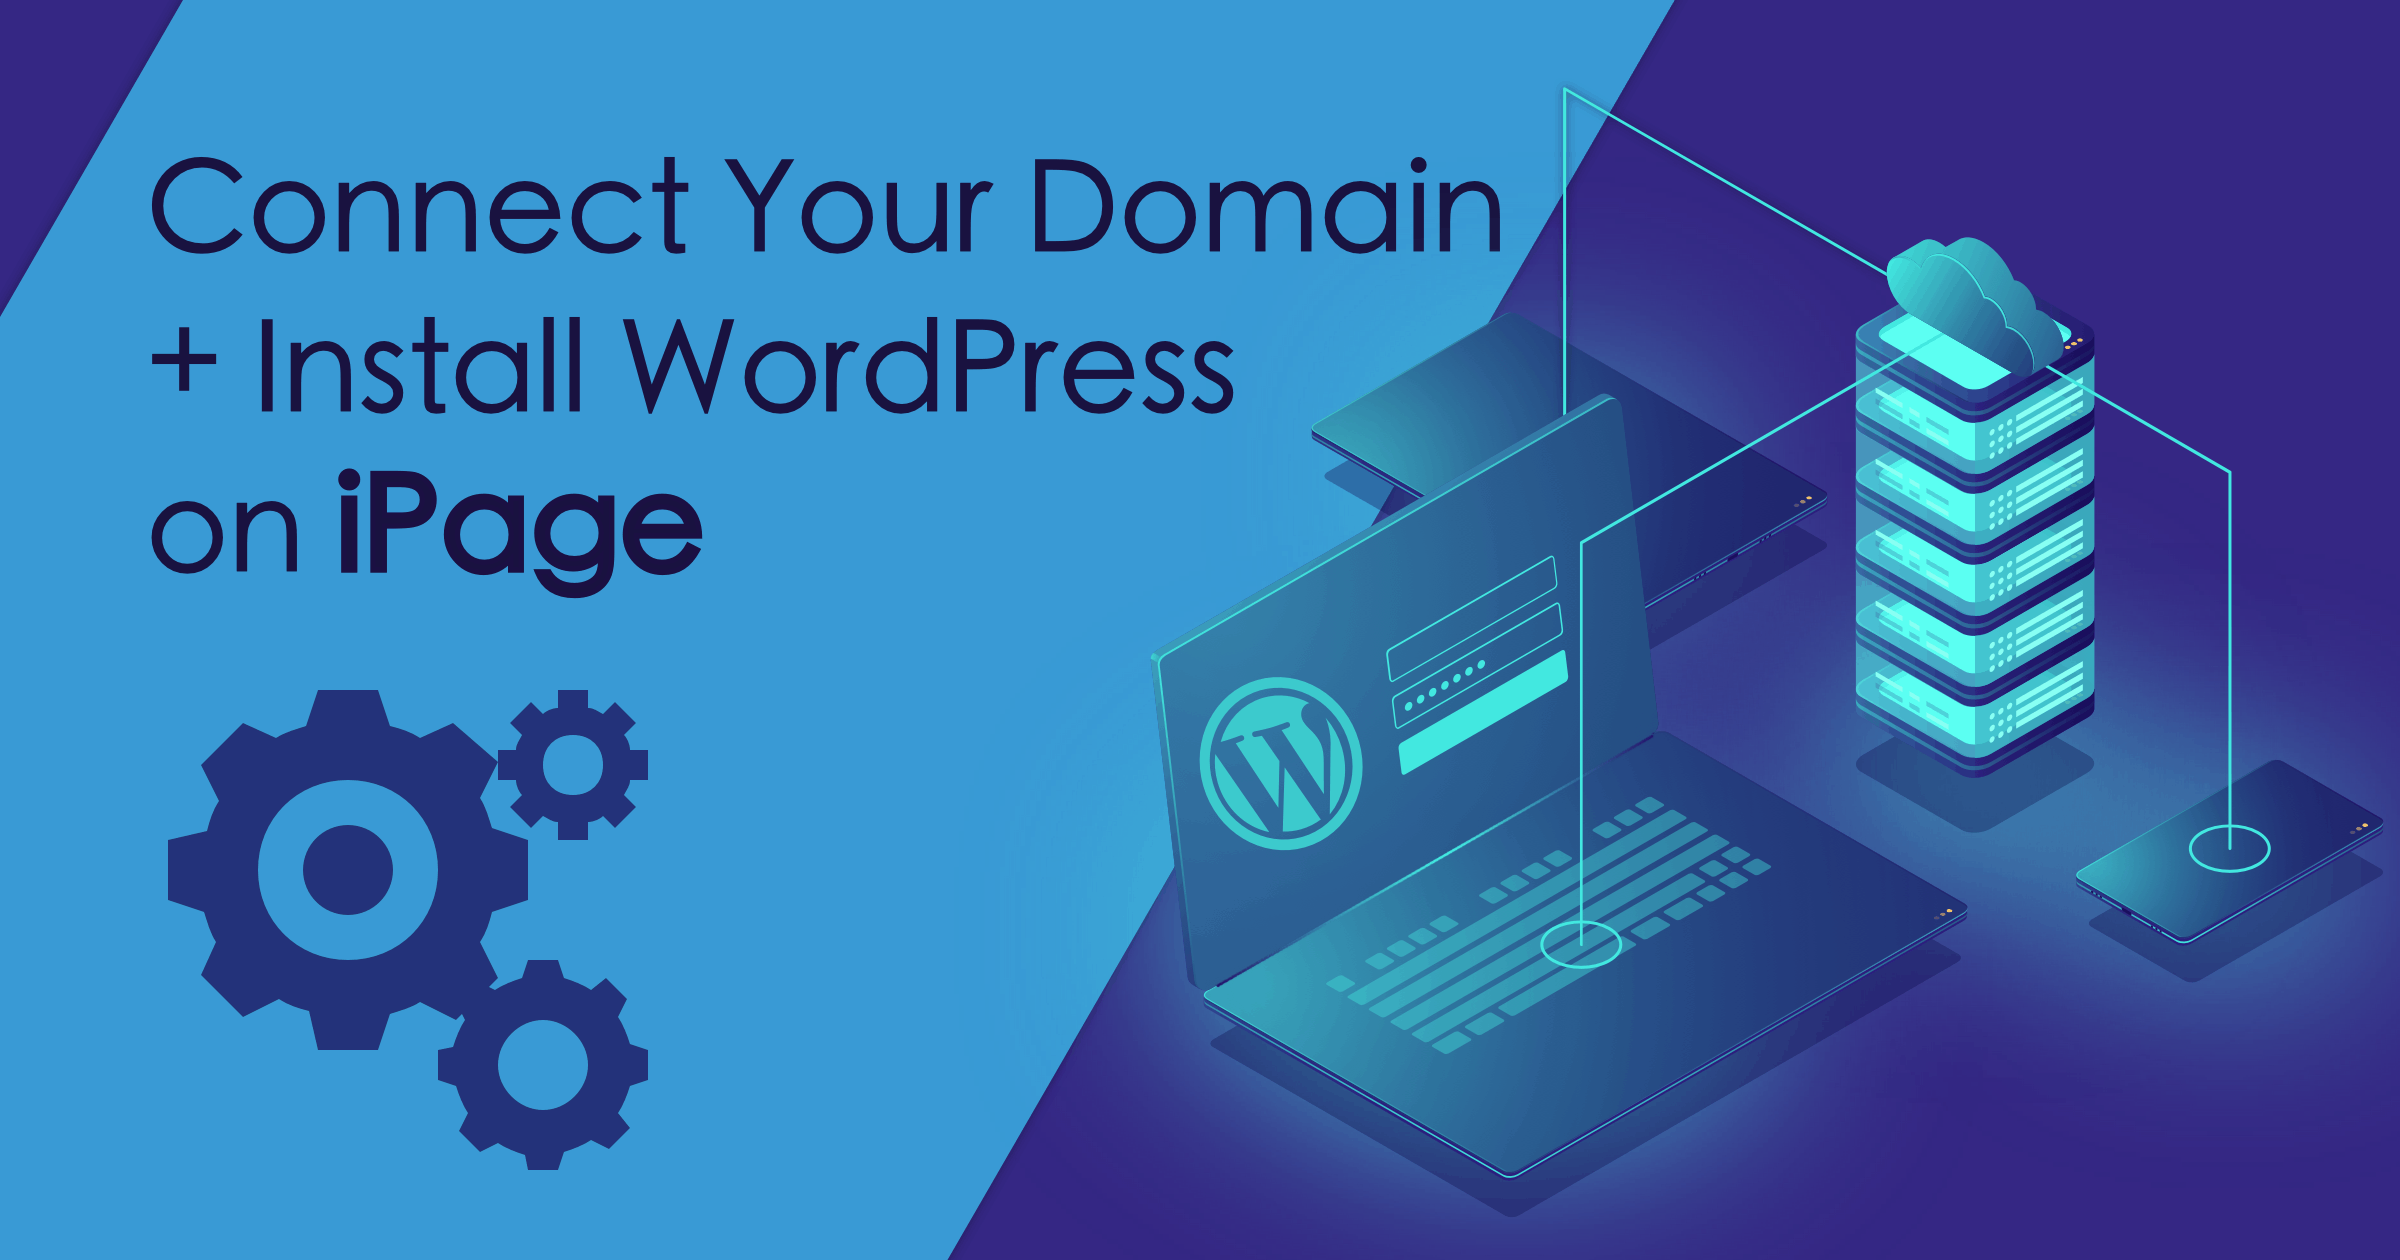 How to Connect a Domain and Install WordPress on iPage